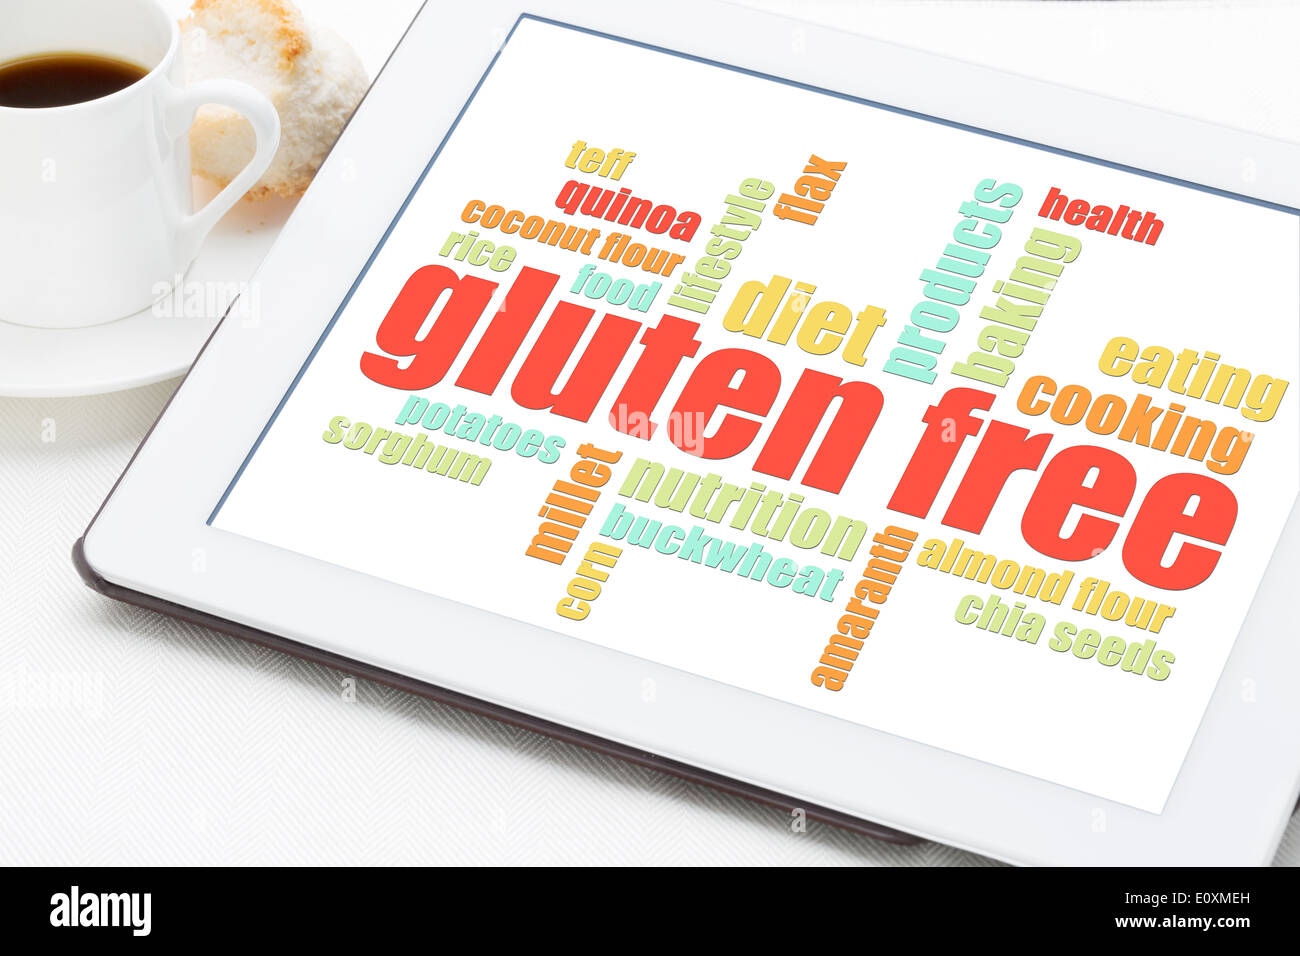 gluten free cooking word cloud on a digital tablet with a cup of coffee - Stock Image